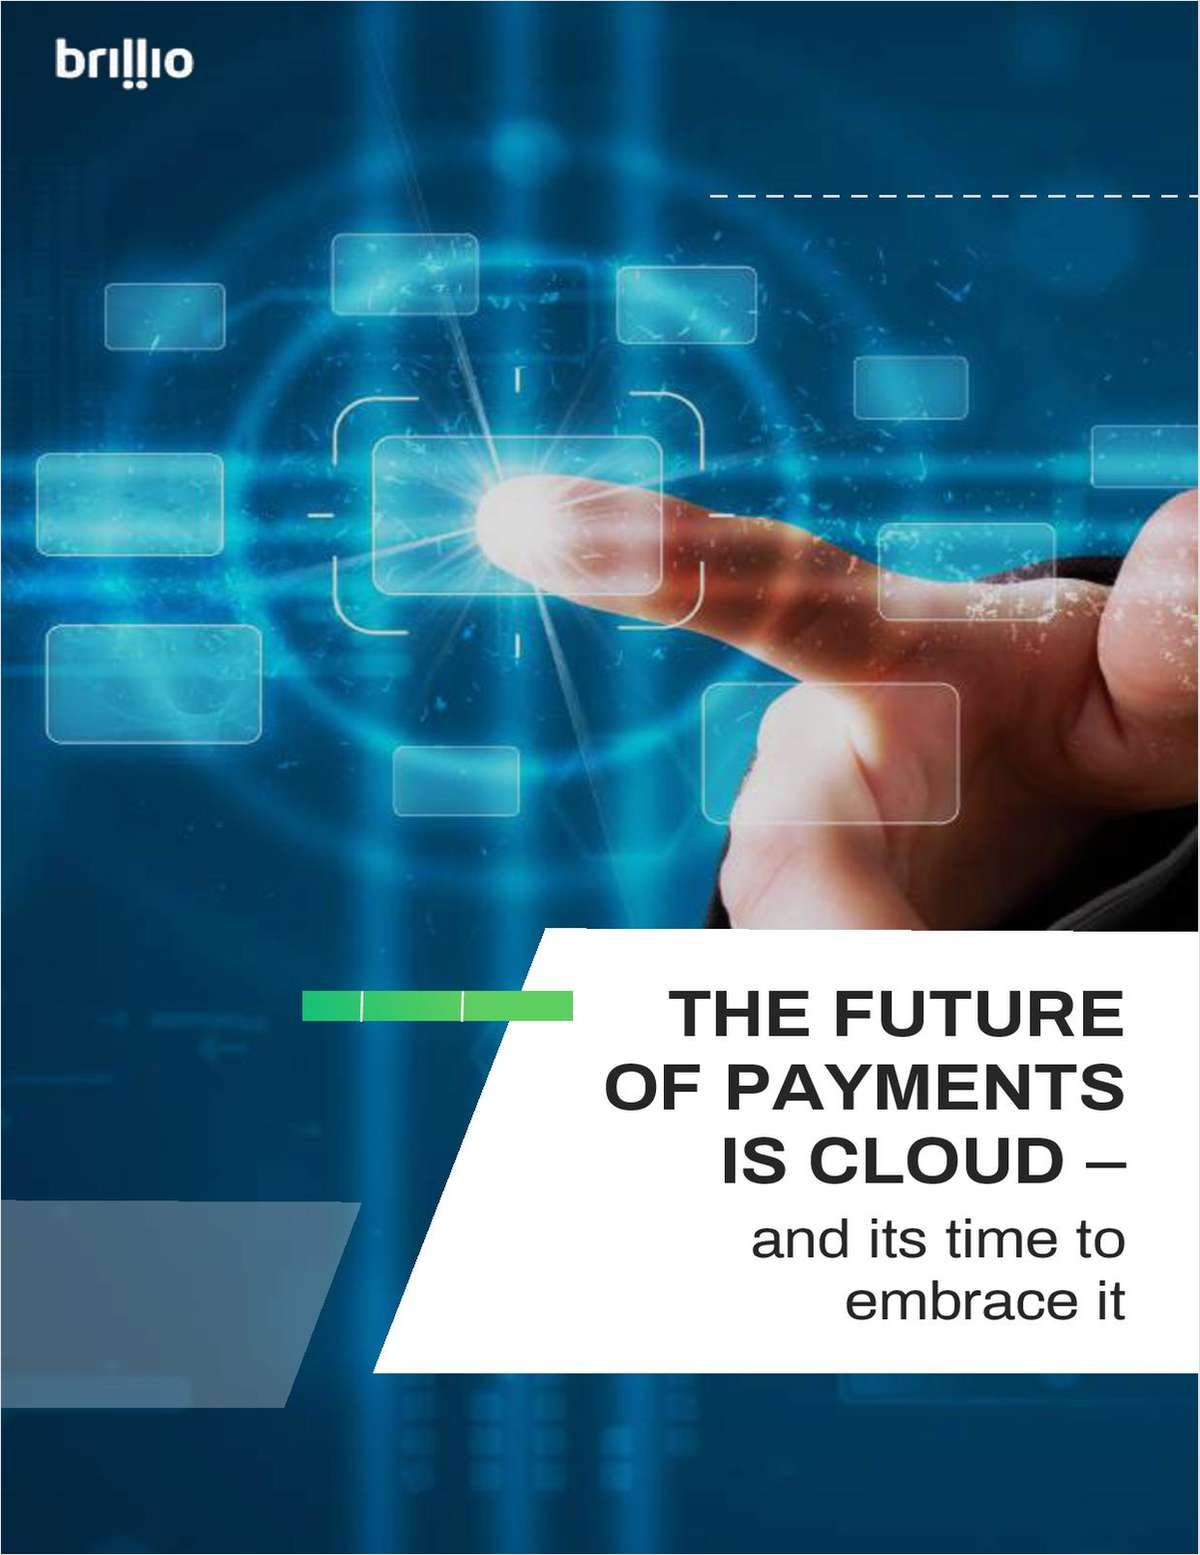 The Future of Payments is Cloud